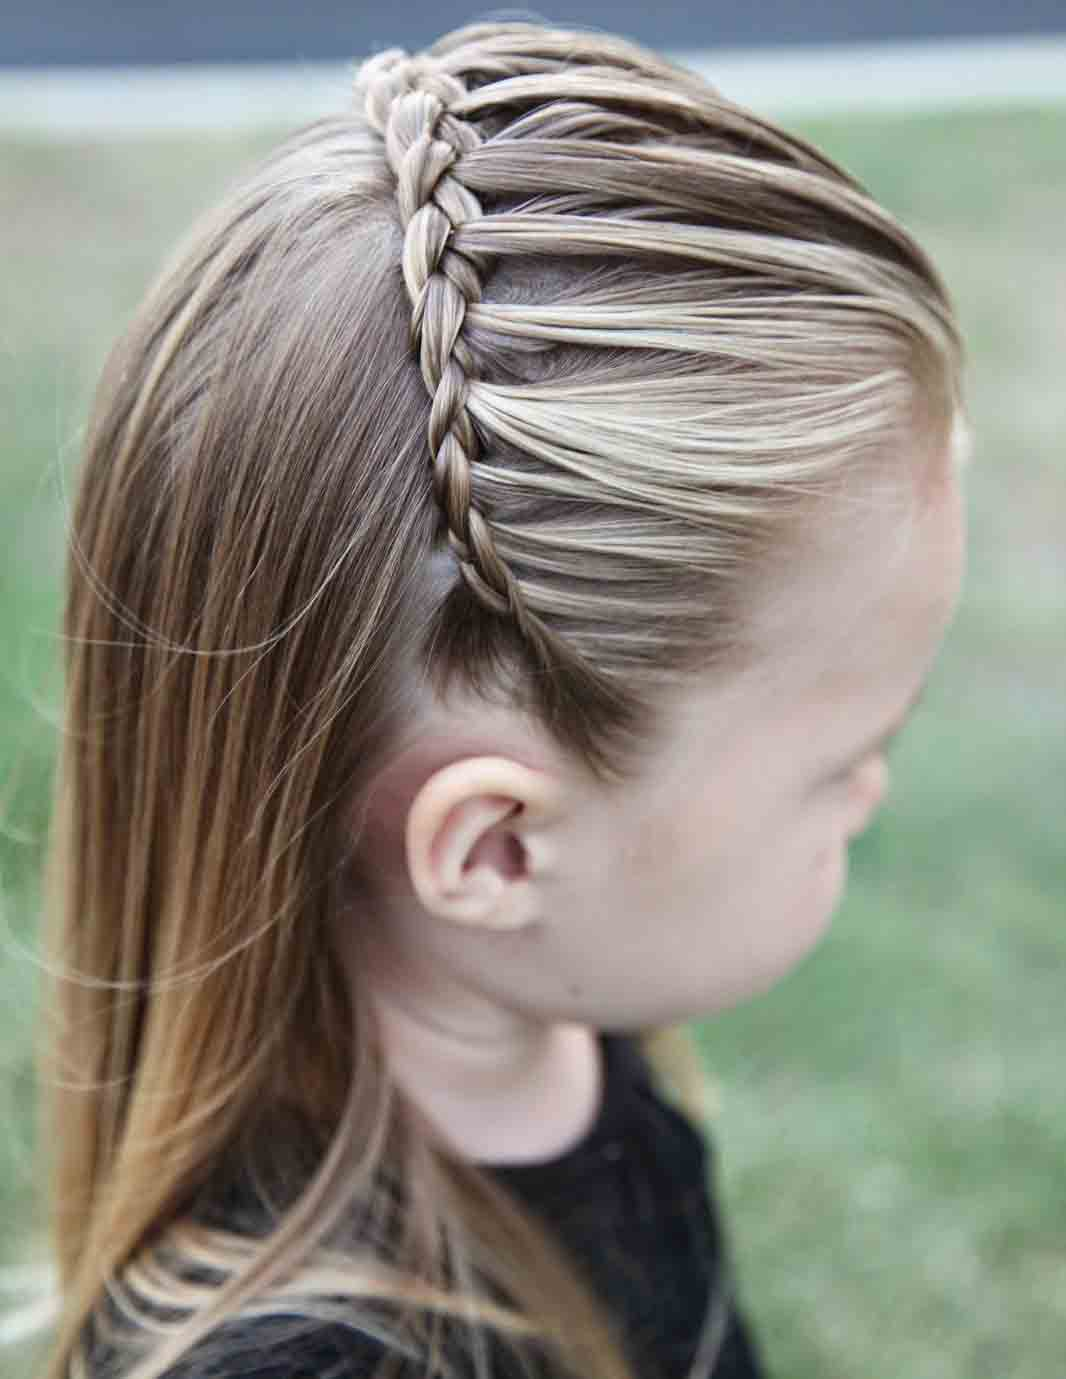 Little-girl-eid-hairstyles-for-eid-20 - FashionEven